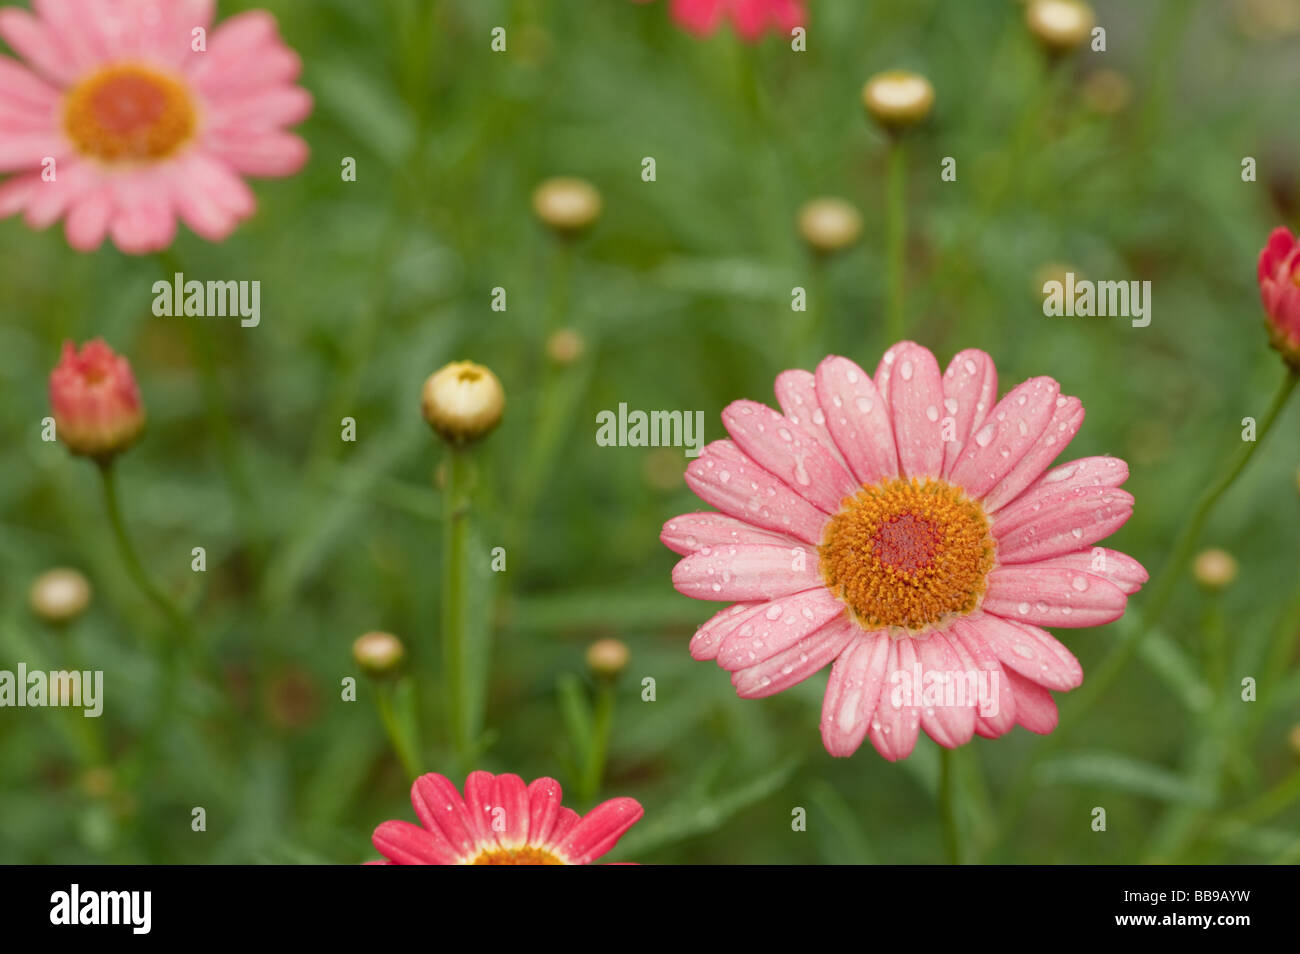 Daisy type flower stock photos daisy type flower stock images alamy pink daisy type flower blooming in a meadow after a rain stock image izmirmasajfo